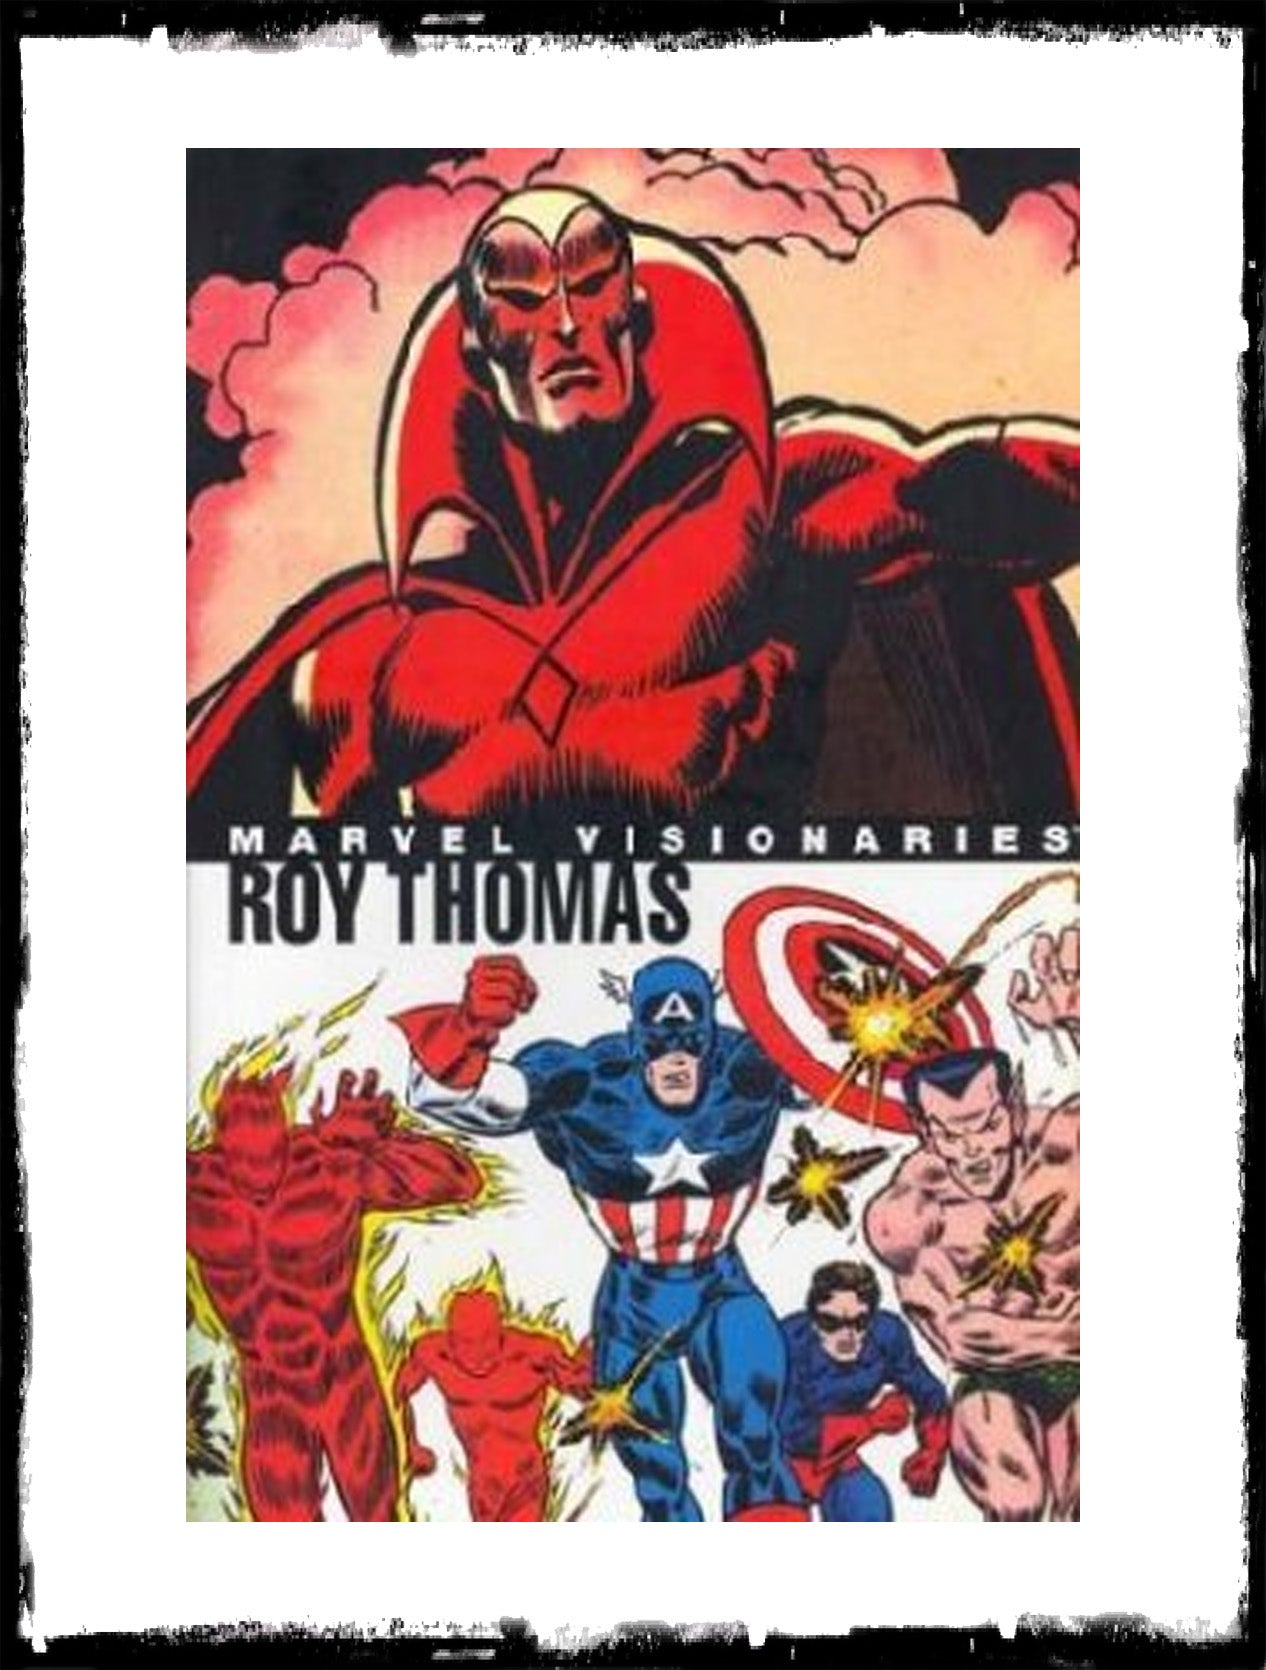 MARVEL VISIONARIES: ROY THOMAS - HARDCOVER